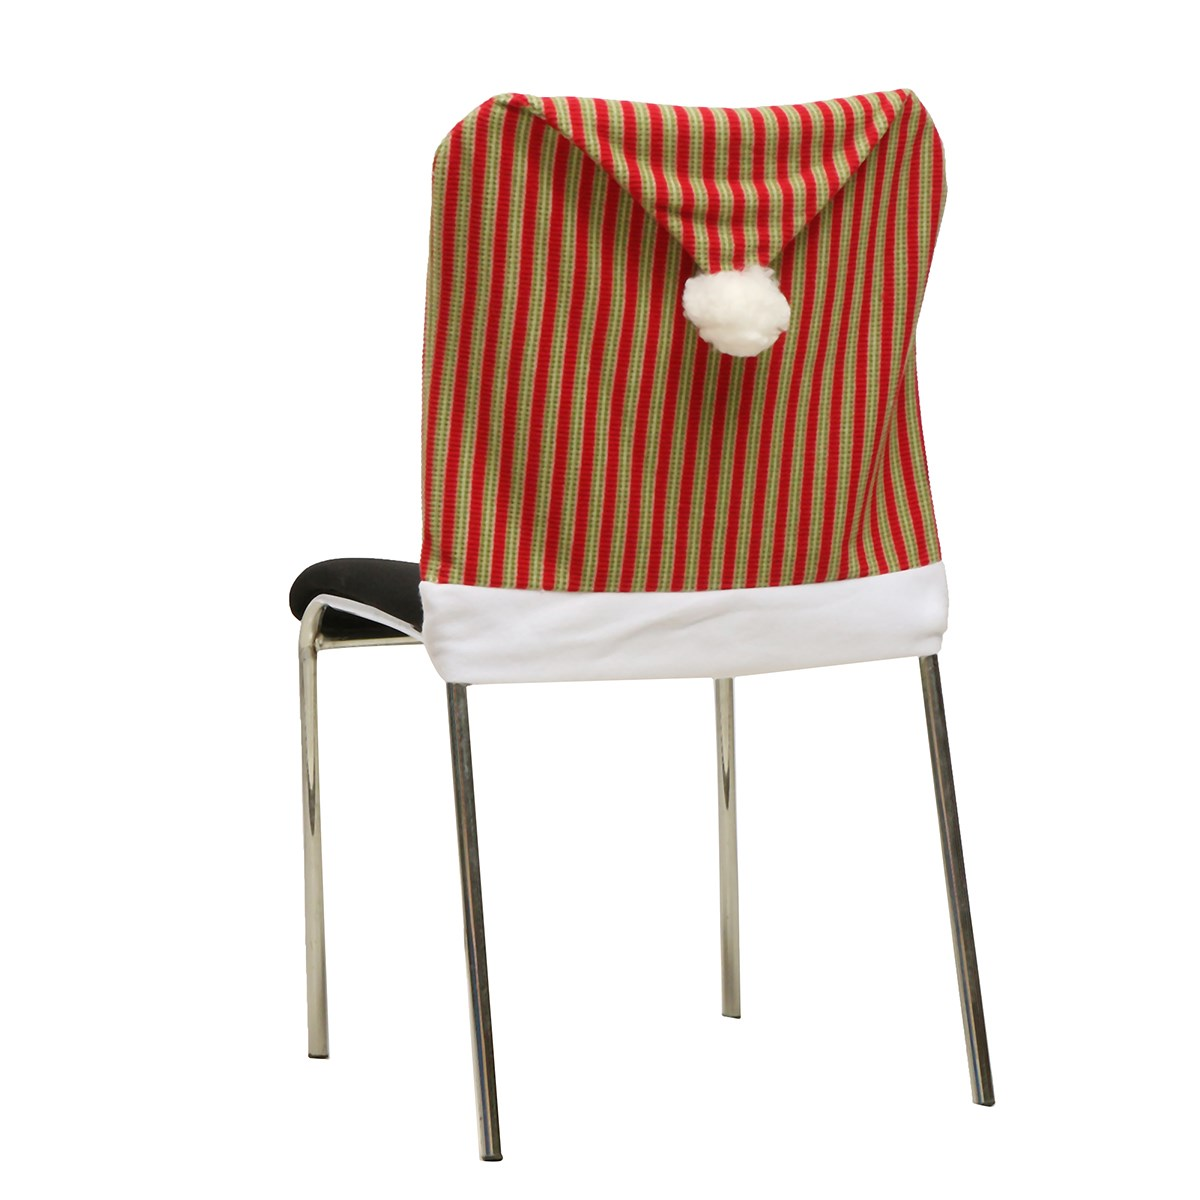 50X70cm Christmas Chair Covers Vertical Stripes Lovely Christmas ...